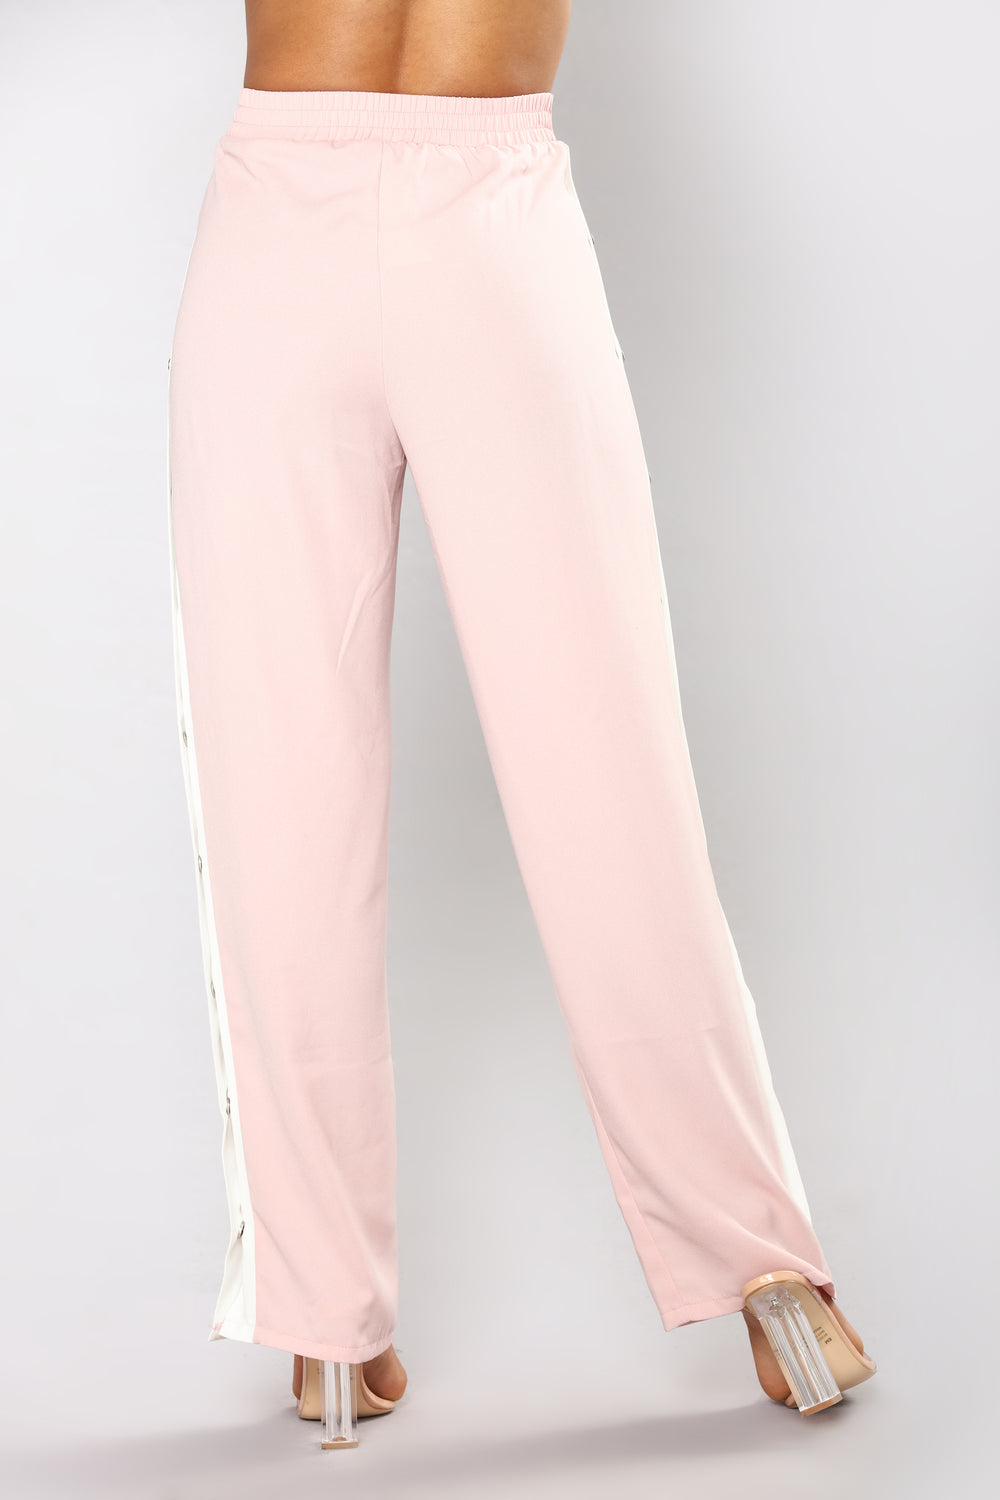 Simple Rules Snap Pants - Pink